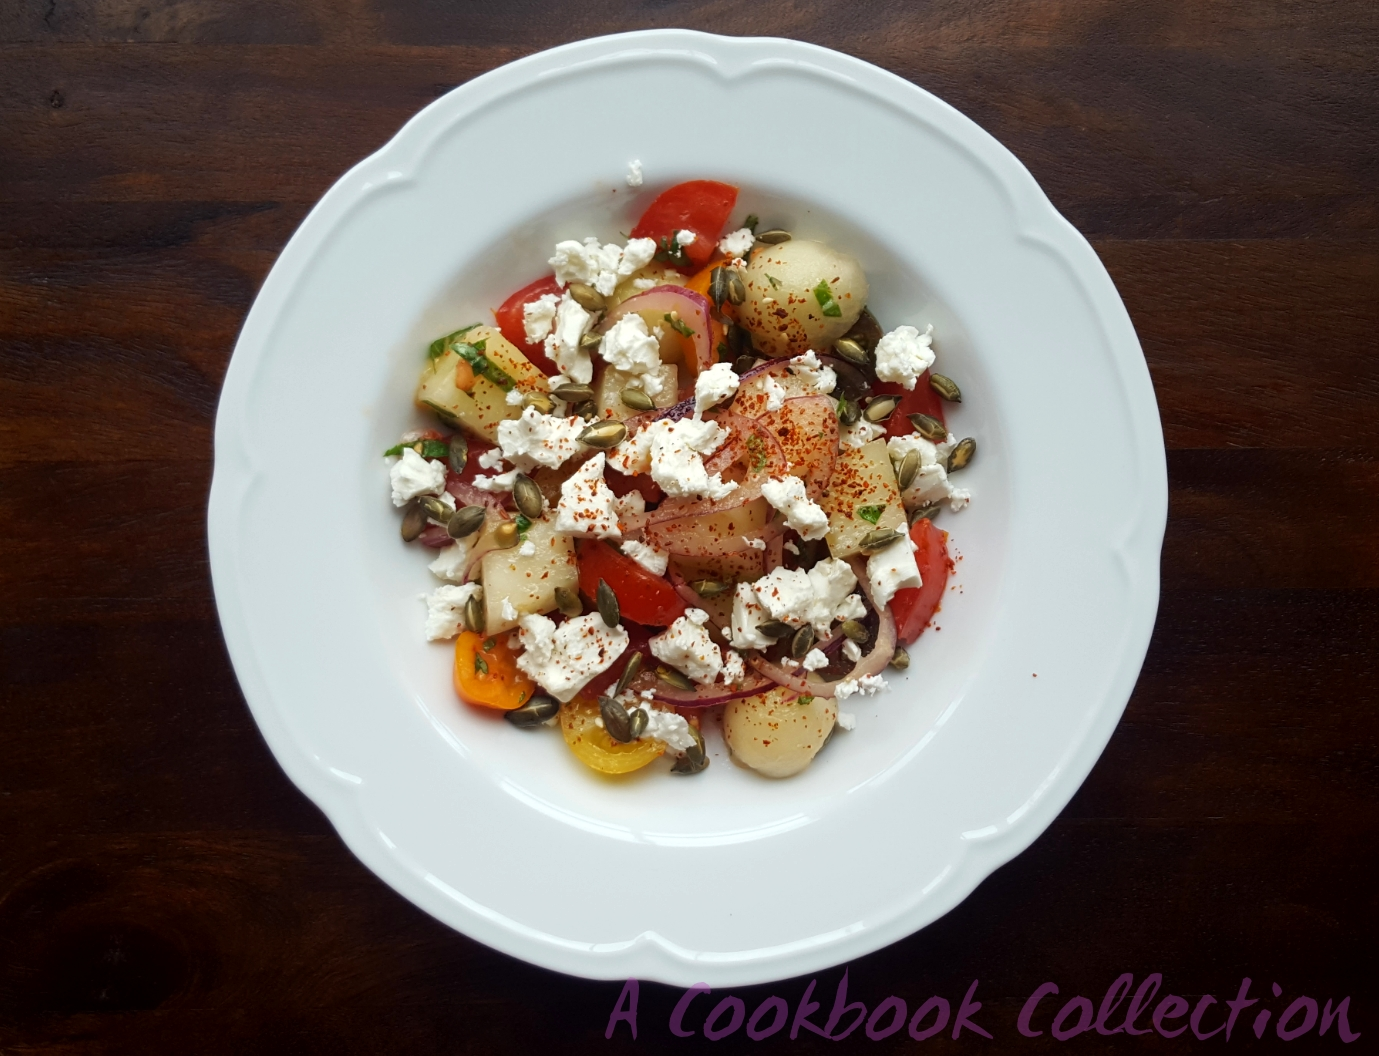 Tomato Melon and Feta Salad - A Cookbook Collection